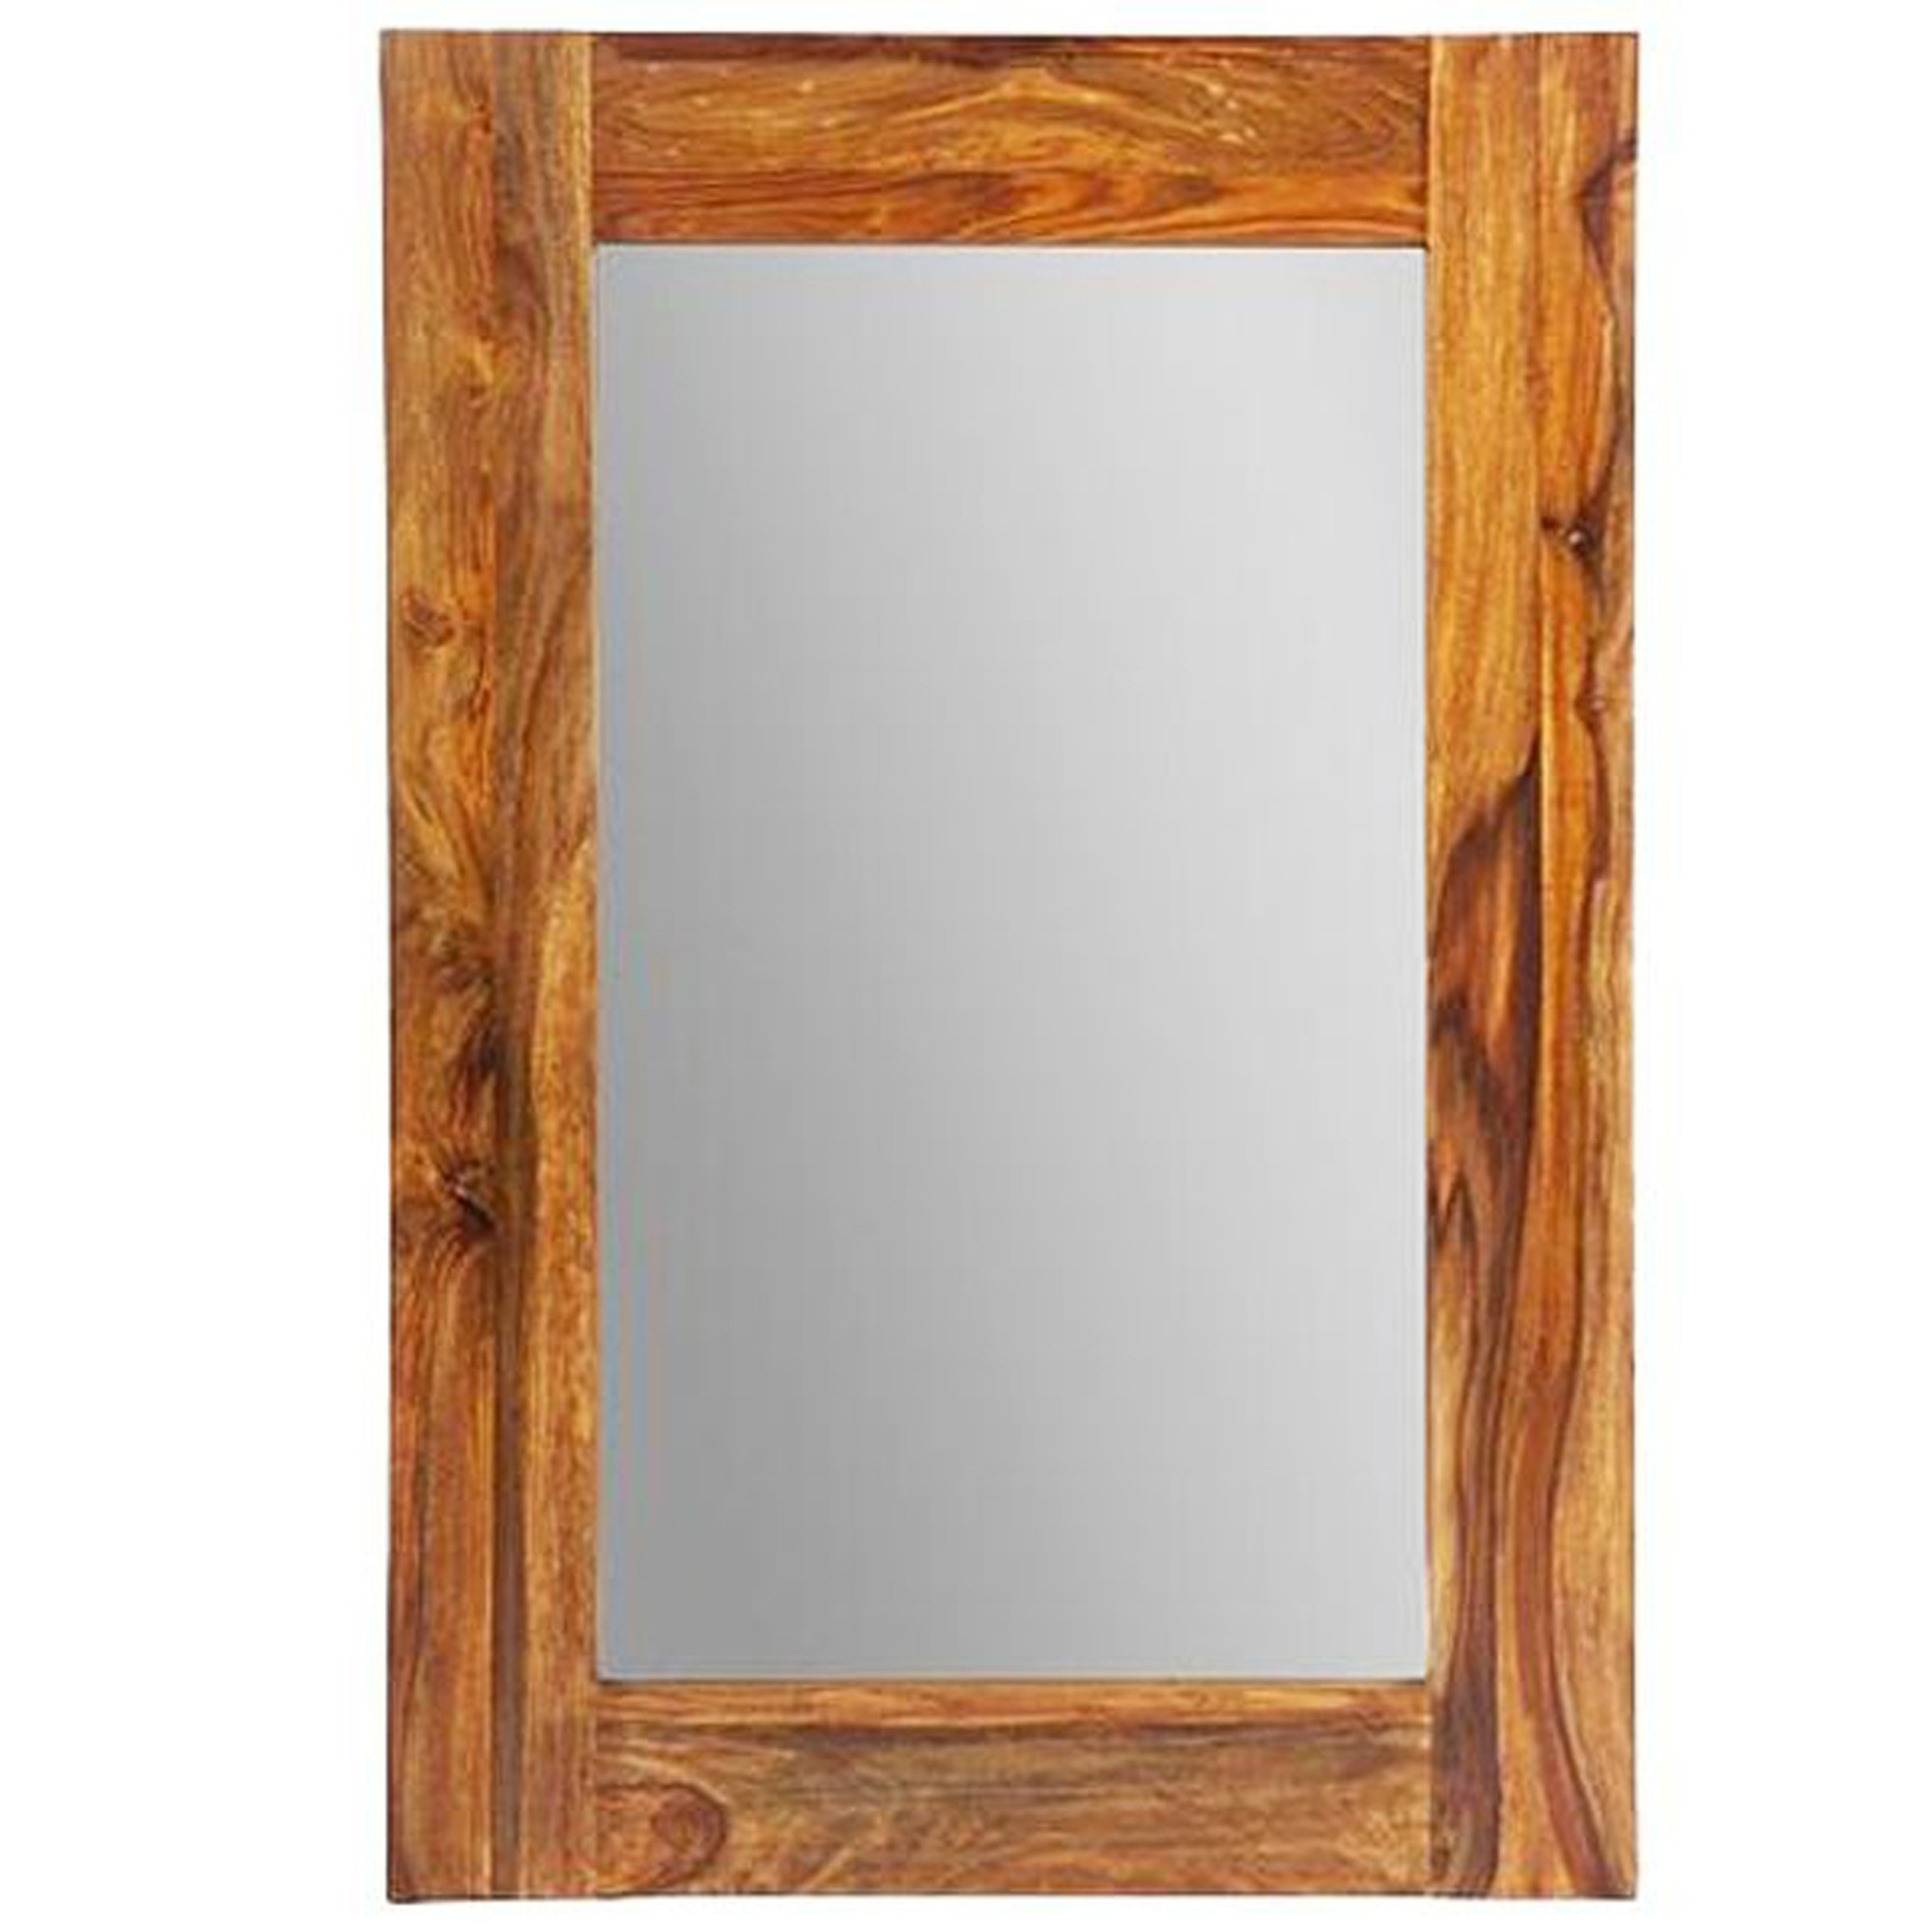 Recent Indian Wooden Wall Mirror Regarding Wooden Wall Mirrors (View 8 of 20)